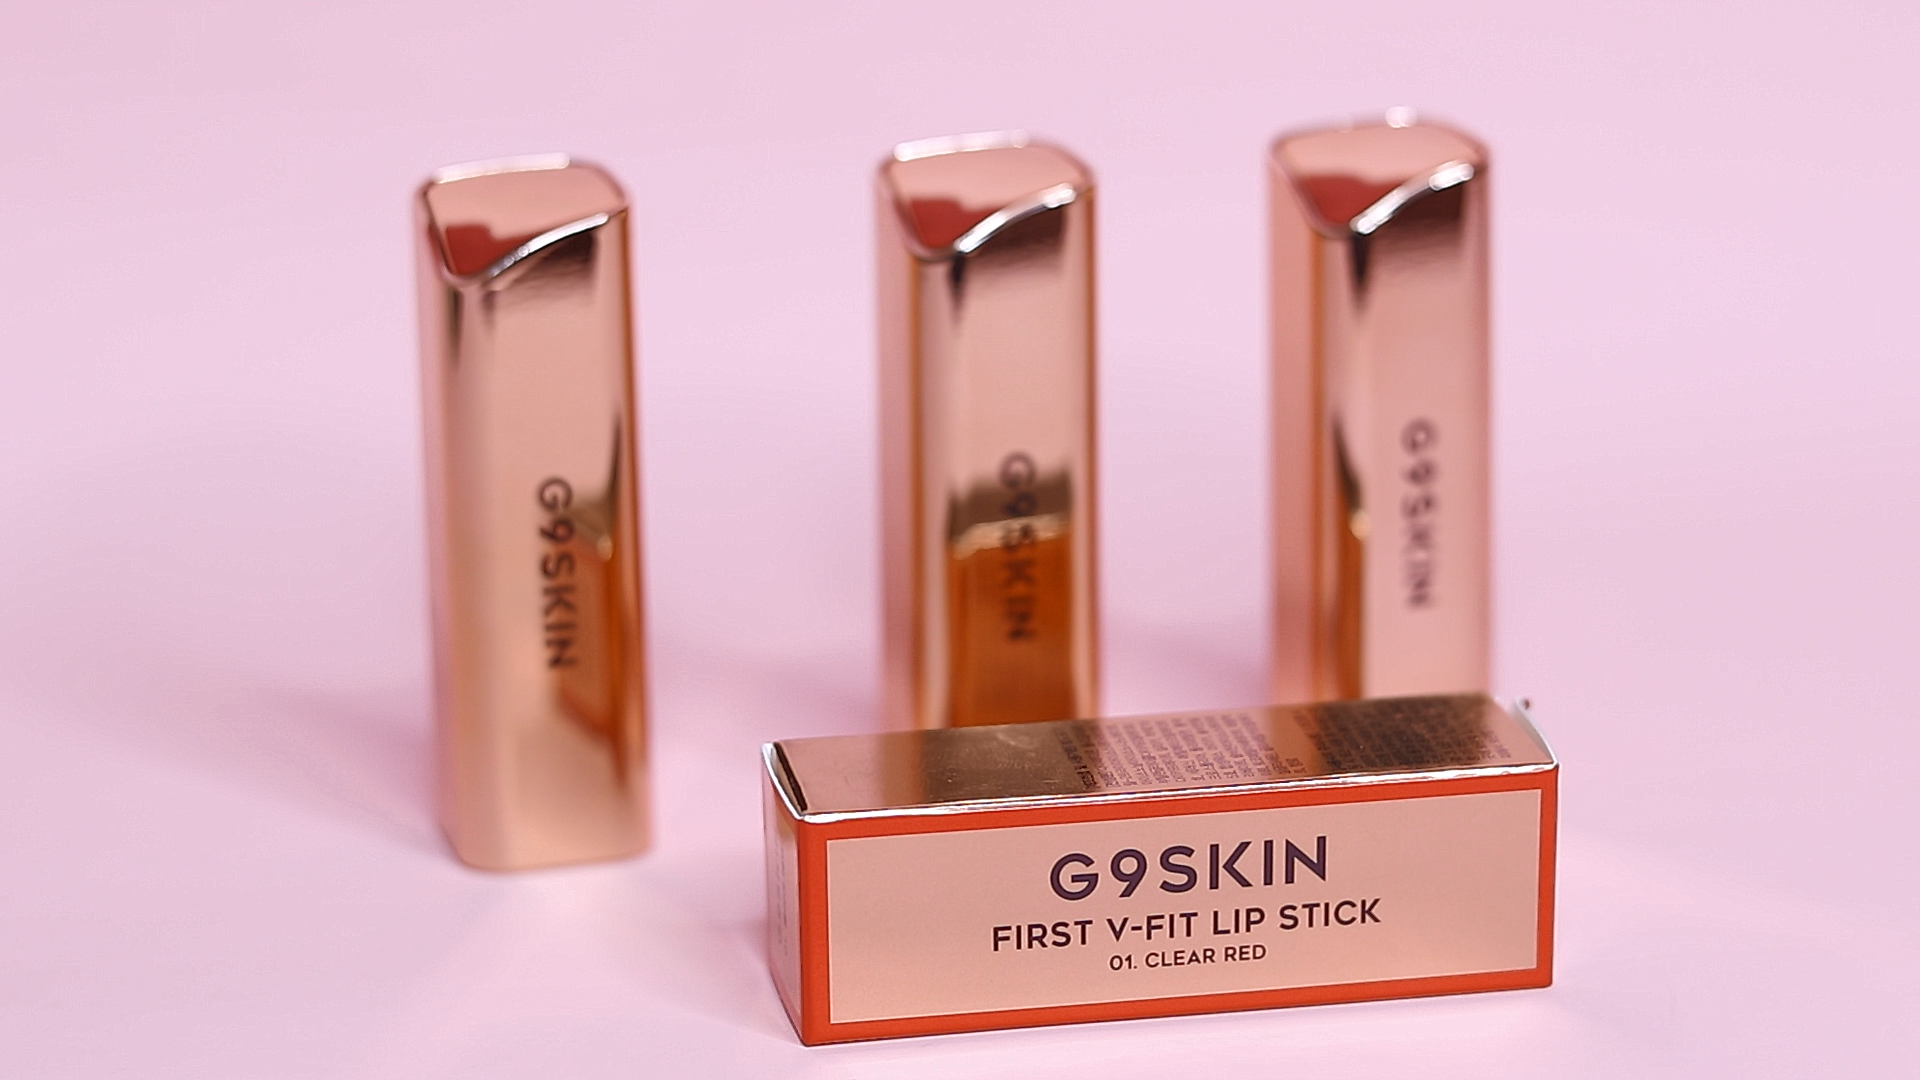 son g9 skin first v-fit lipstick